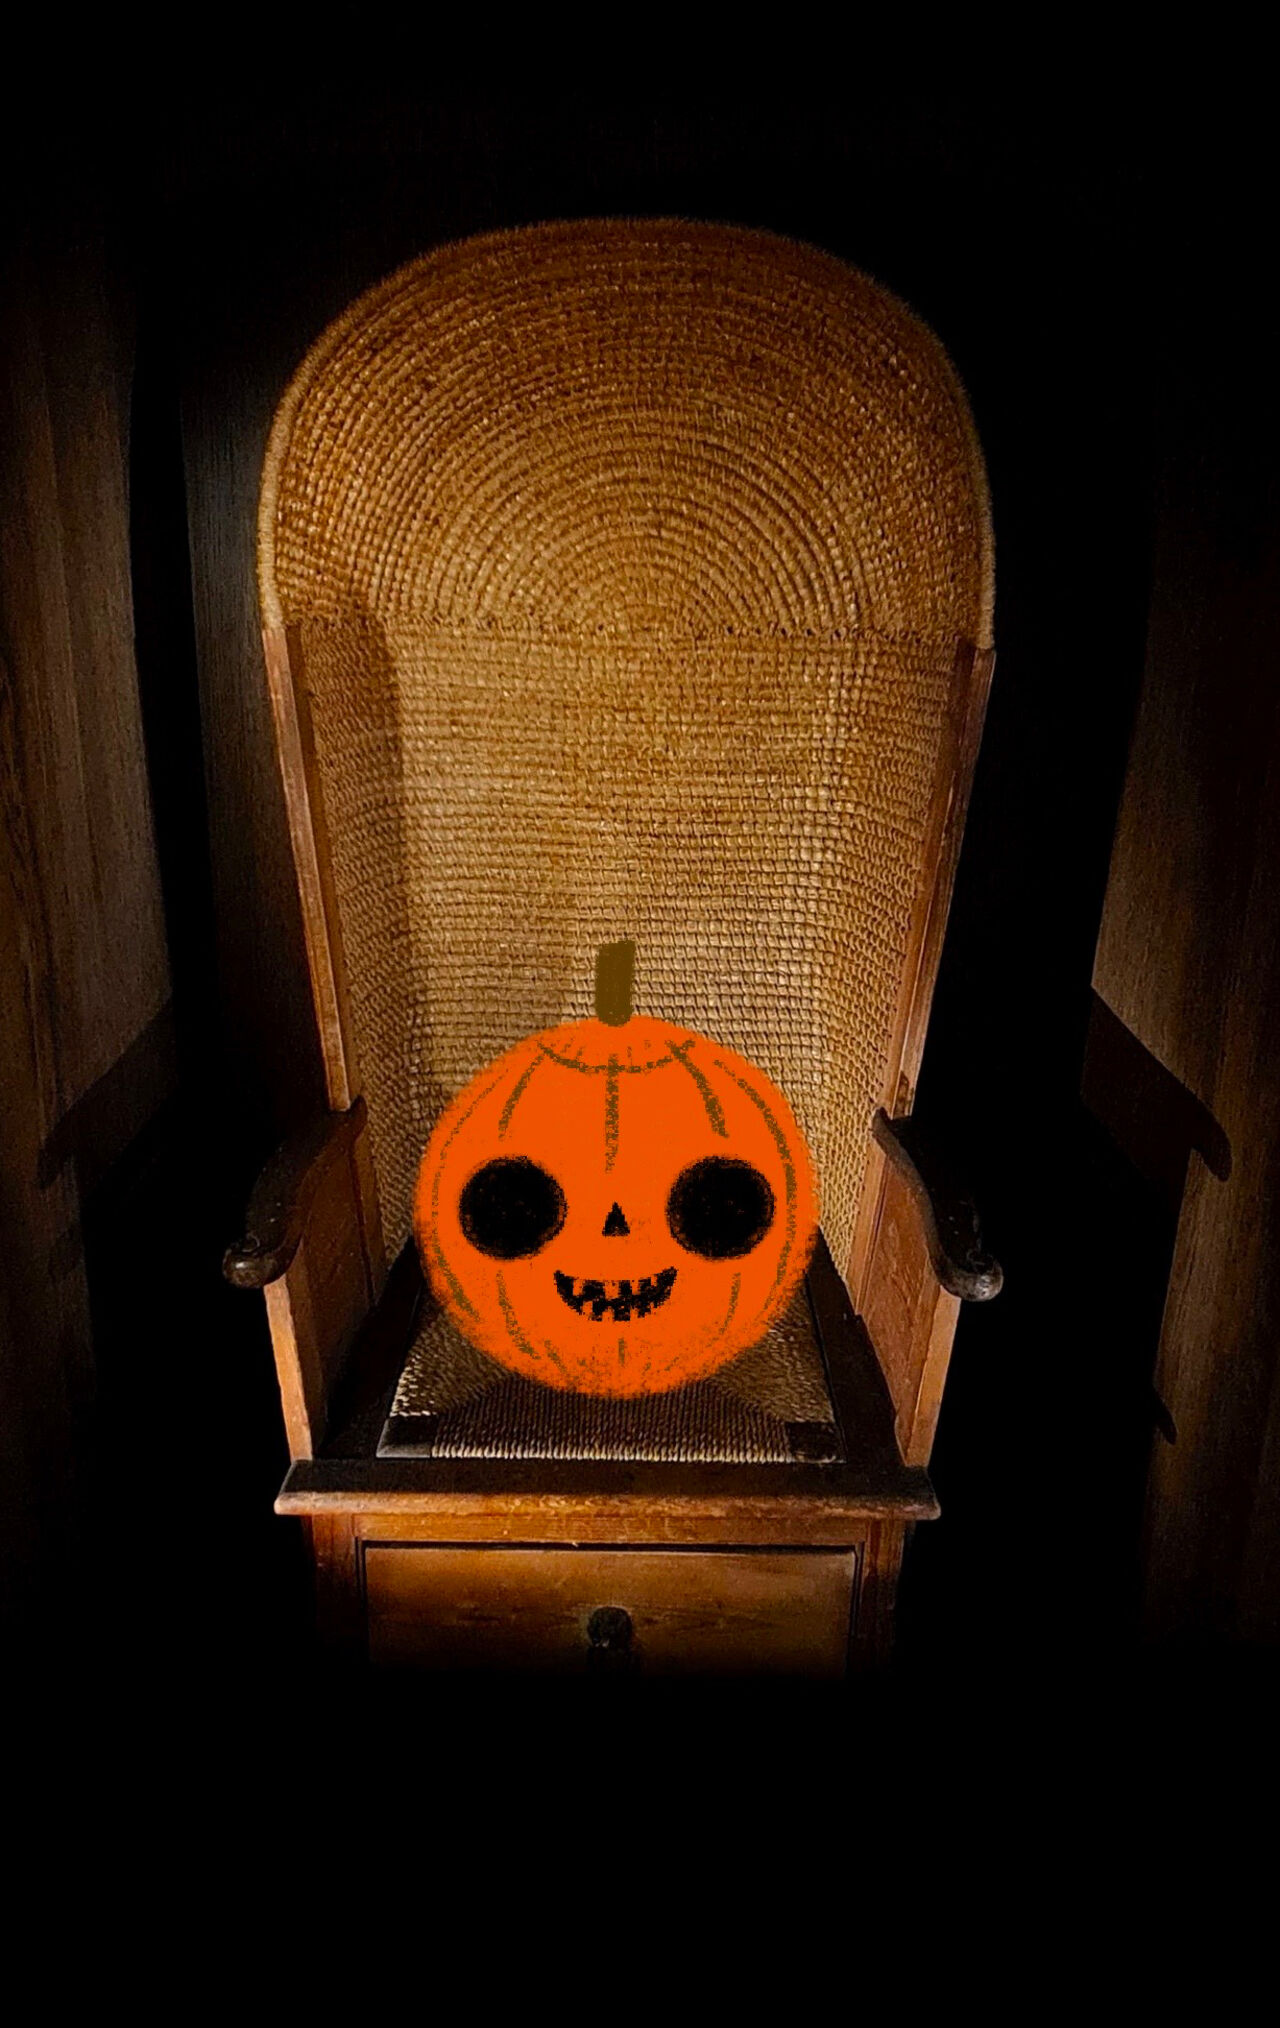 A photo of the Orkney chair in our galleries, but a bright orange illustrated pumpkin with a cheeky face sits on it.